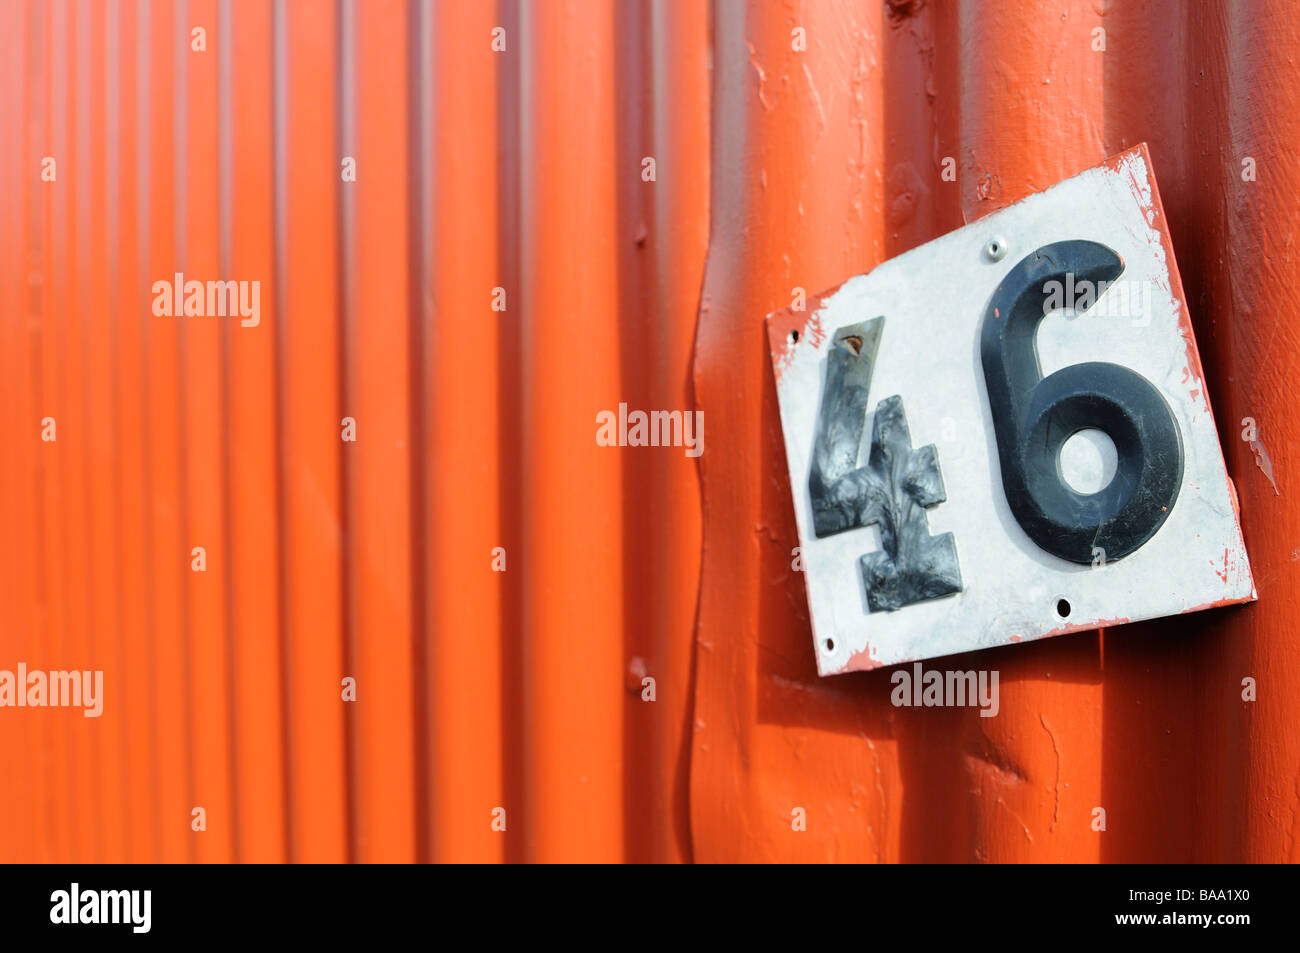 A numer sign on a red wall - Stock Image